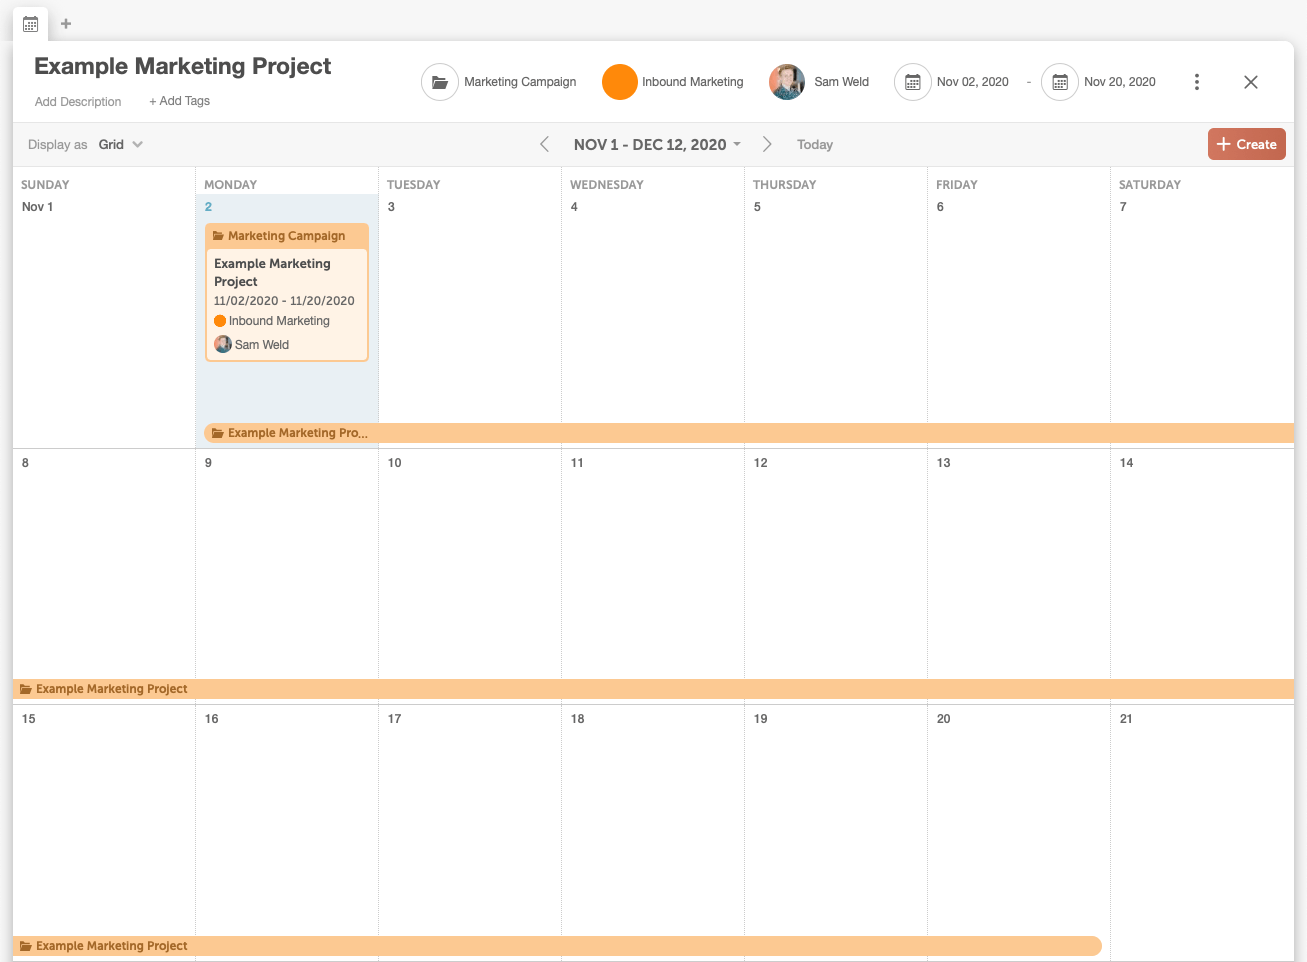 Calendar view of projects